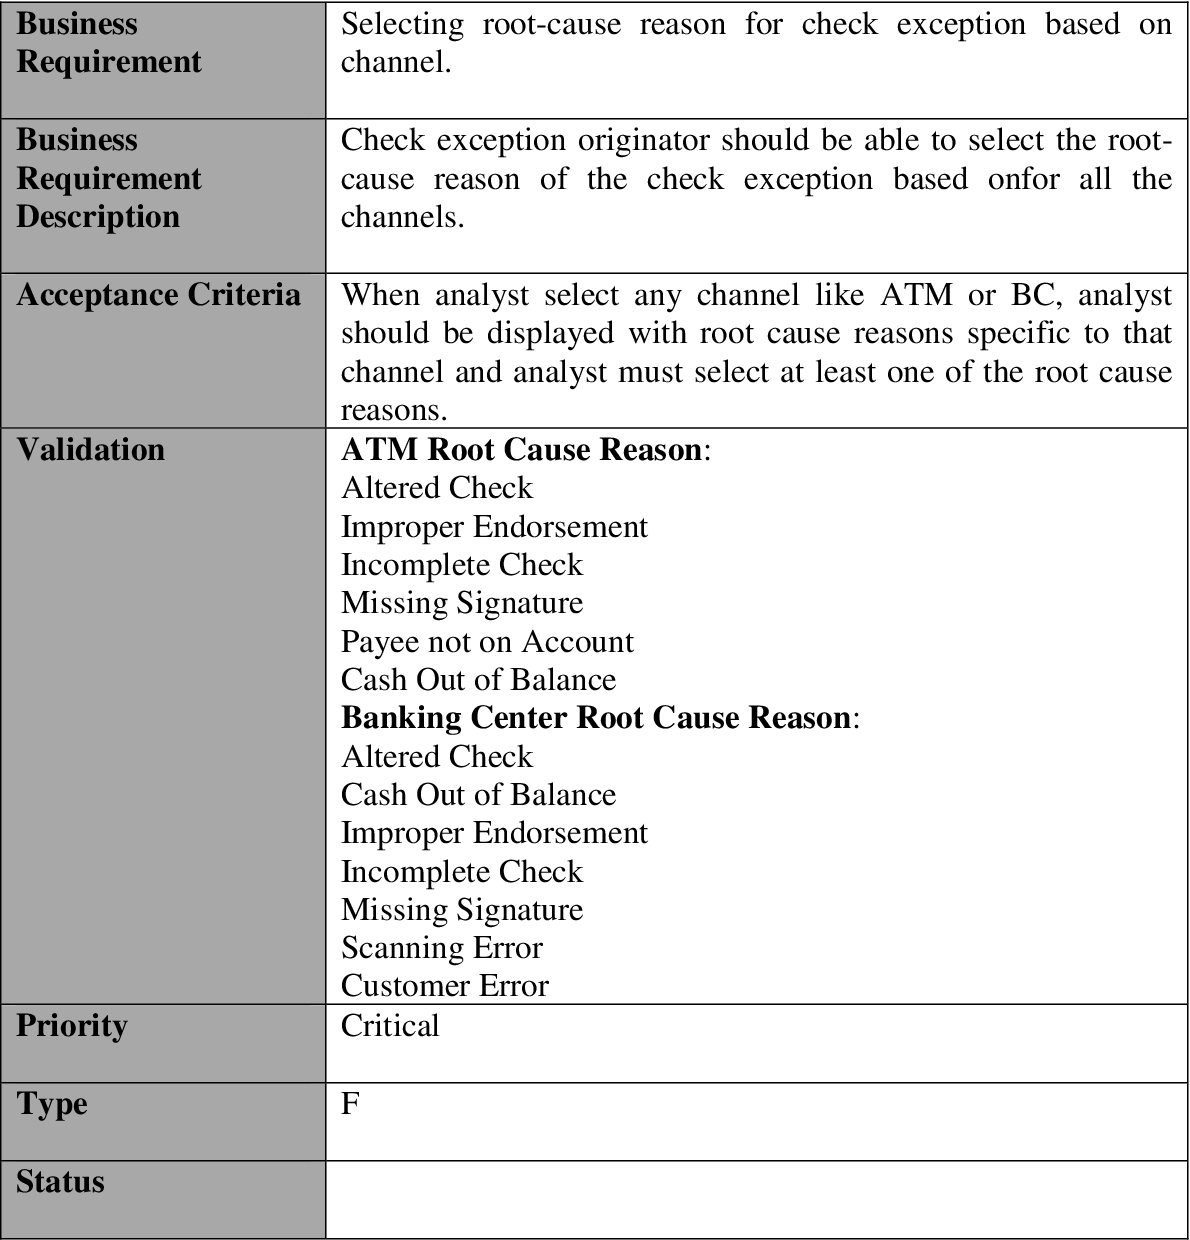 Table 2 from Check Exception Automation (CEA) System